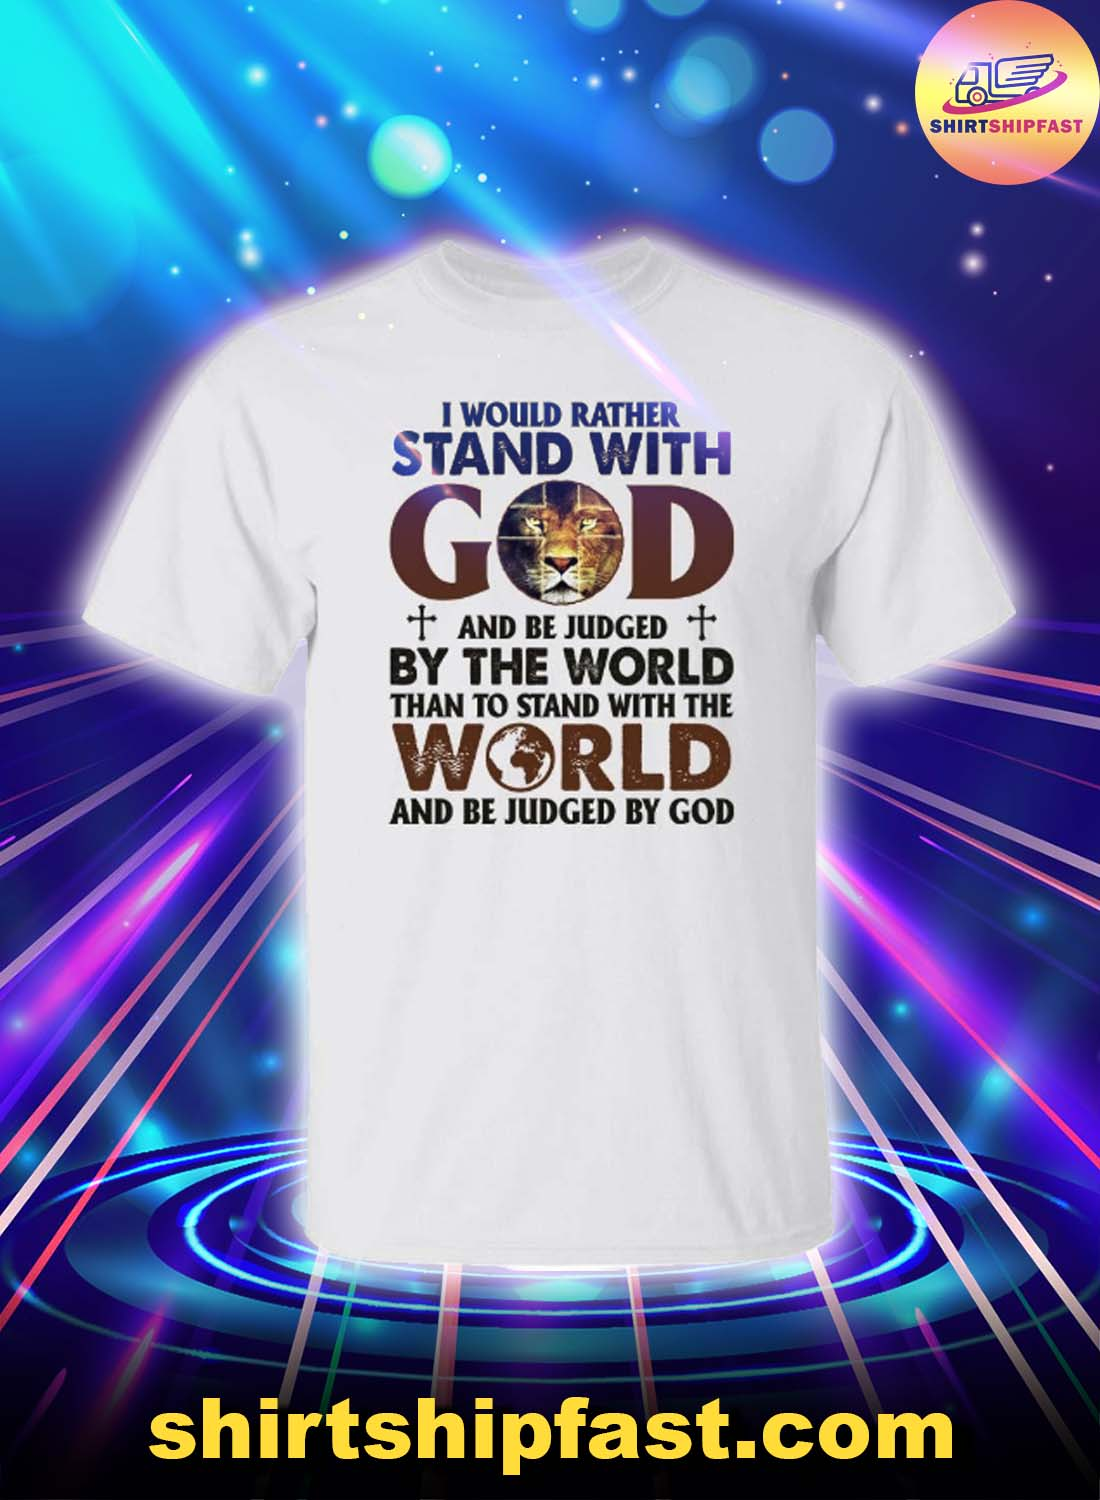 Lion-I-would-rather-stand-with-god-and-be-judged-by-the-world-shirt